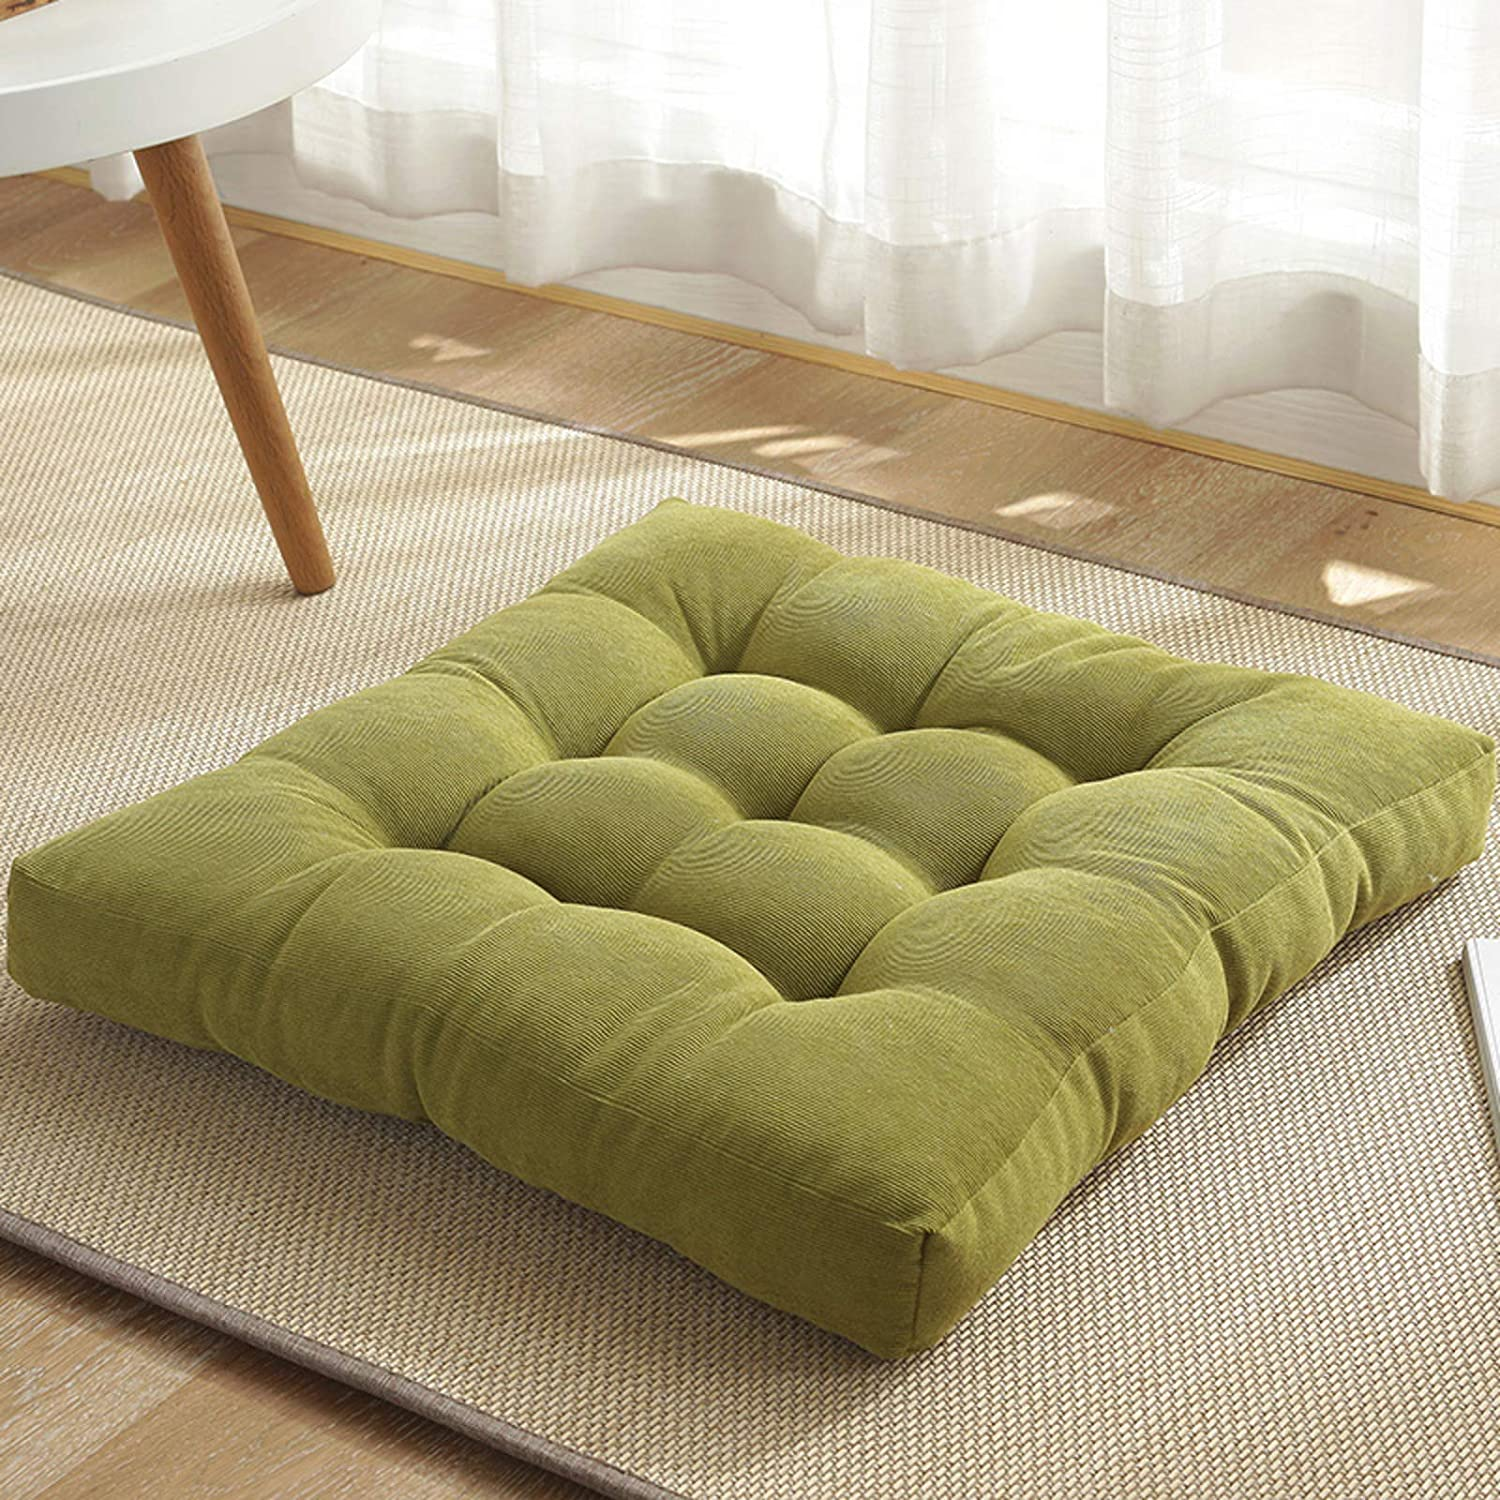 ADSIKOOJF Solid Square Seat shop Cushion Floor Pillow Tufted Financial sales sale Thicken